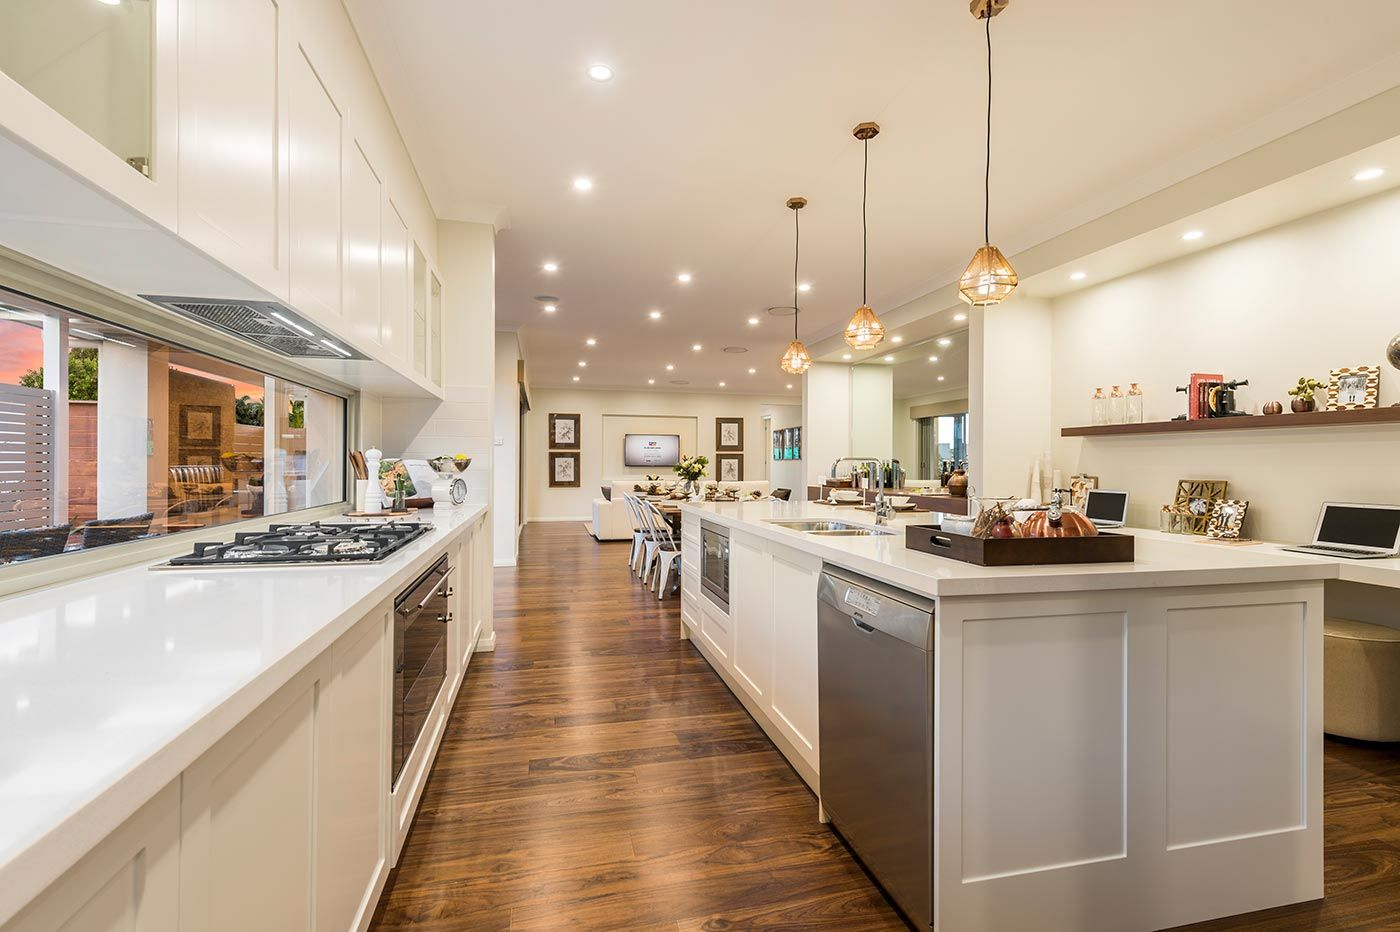 Esperance - Images | McDonald Jones Homes | Cocinas | Pinterest ...